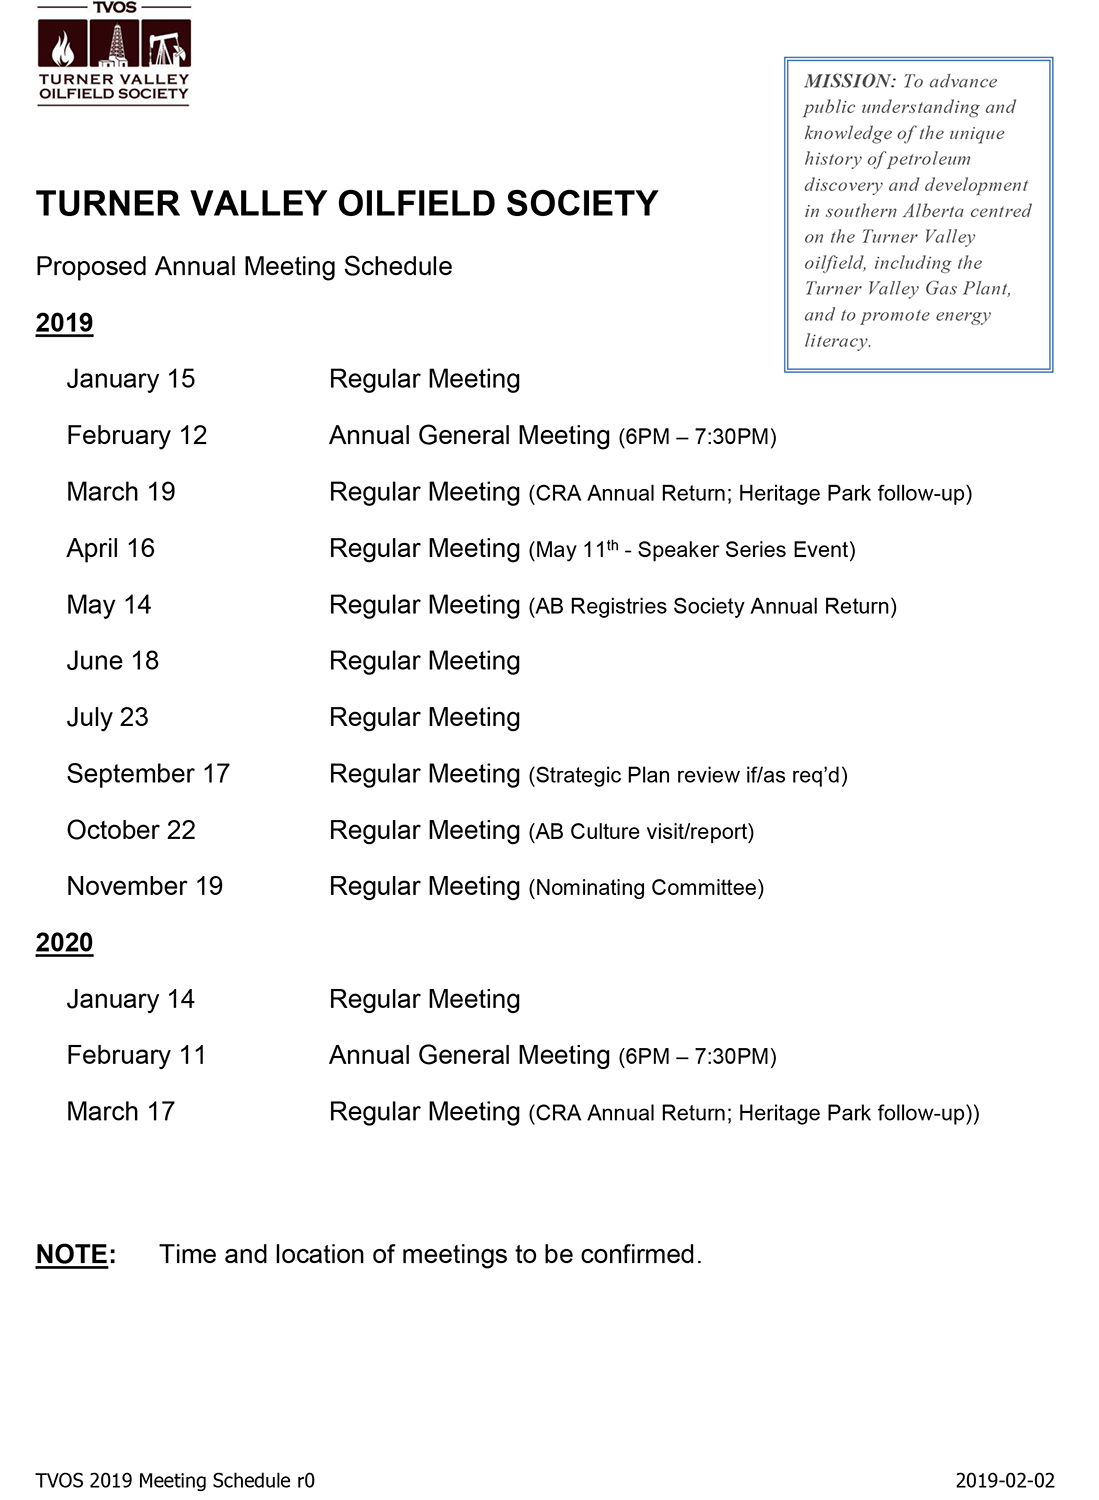 TVOS 2019 Meeting Schedule r0.jpg